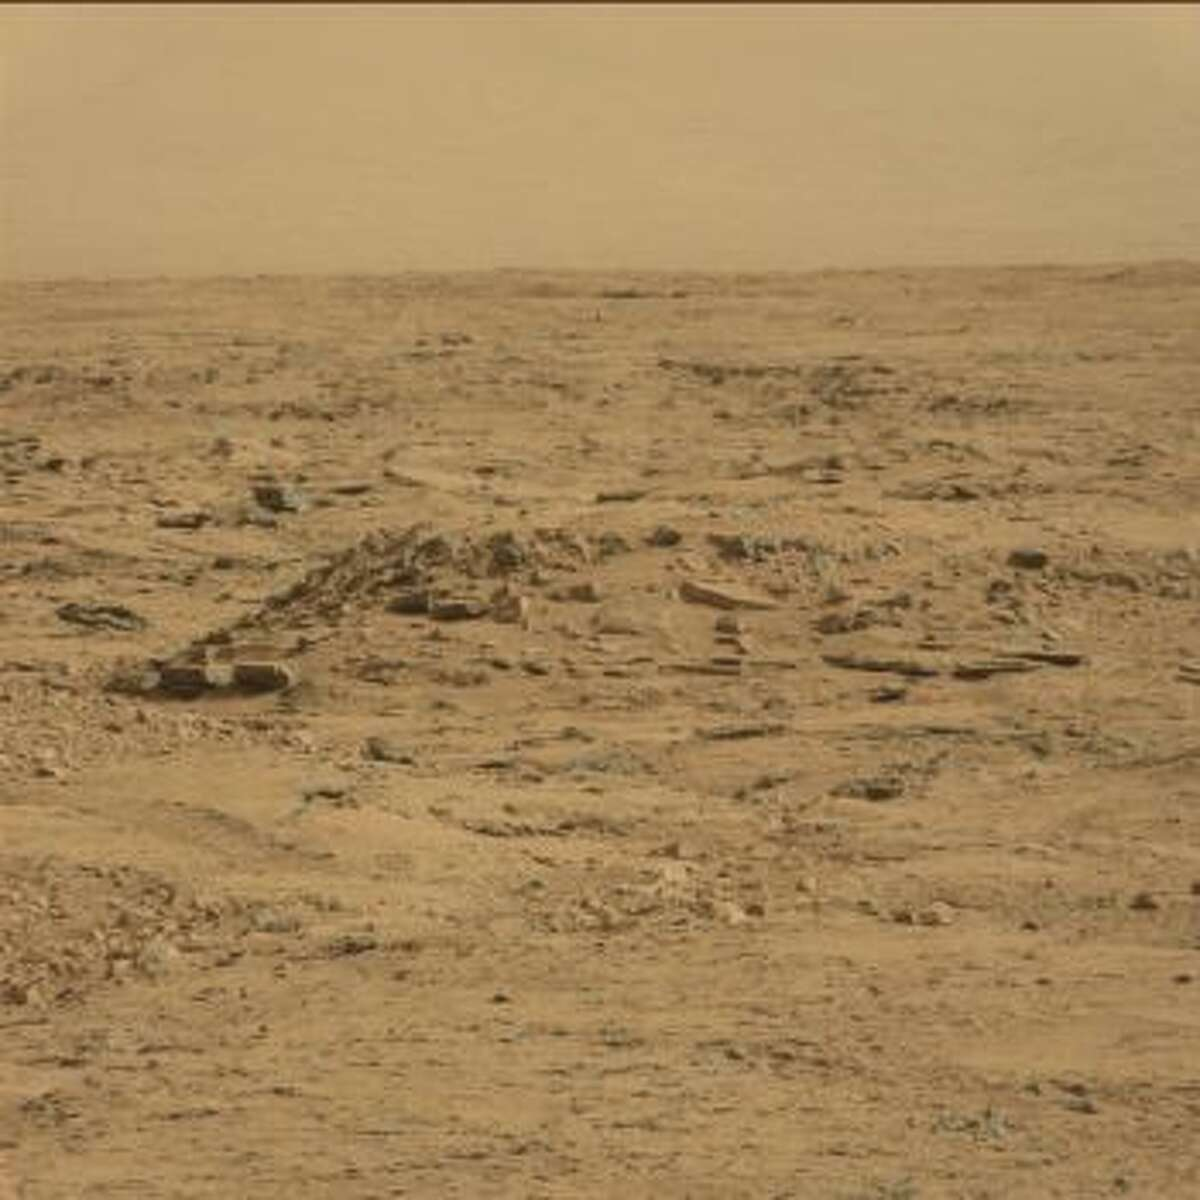 Can you see it? An online group has purportedly spotted a coffin on Mars, seen in this October 2012 image from the Mars rover Curiosity.